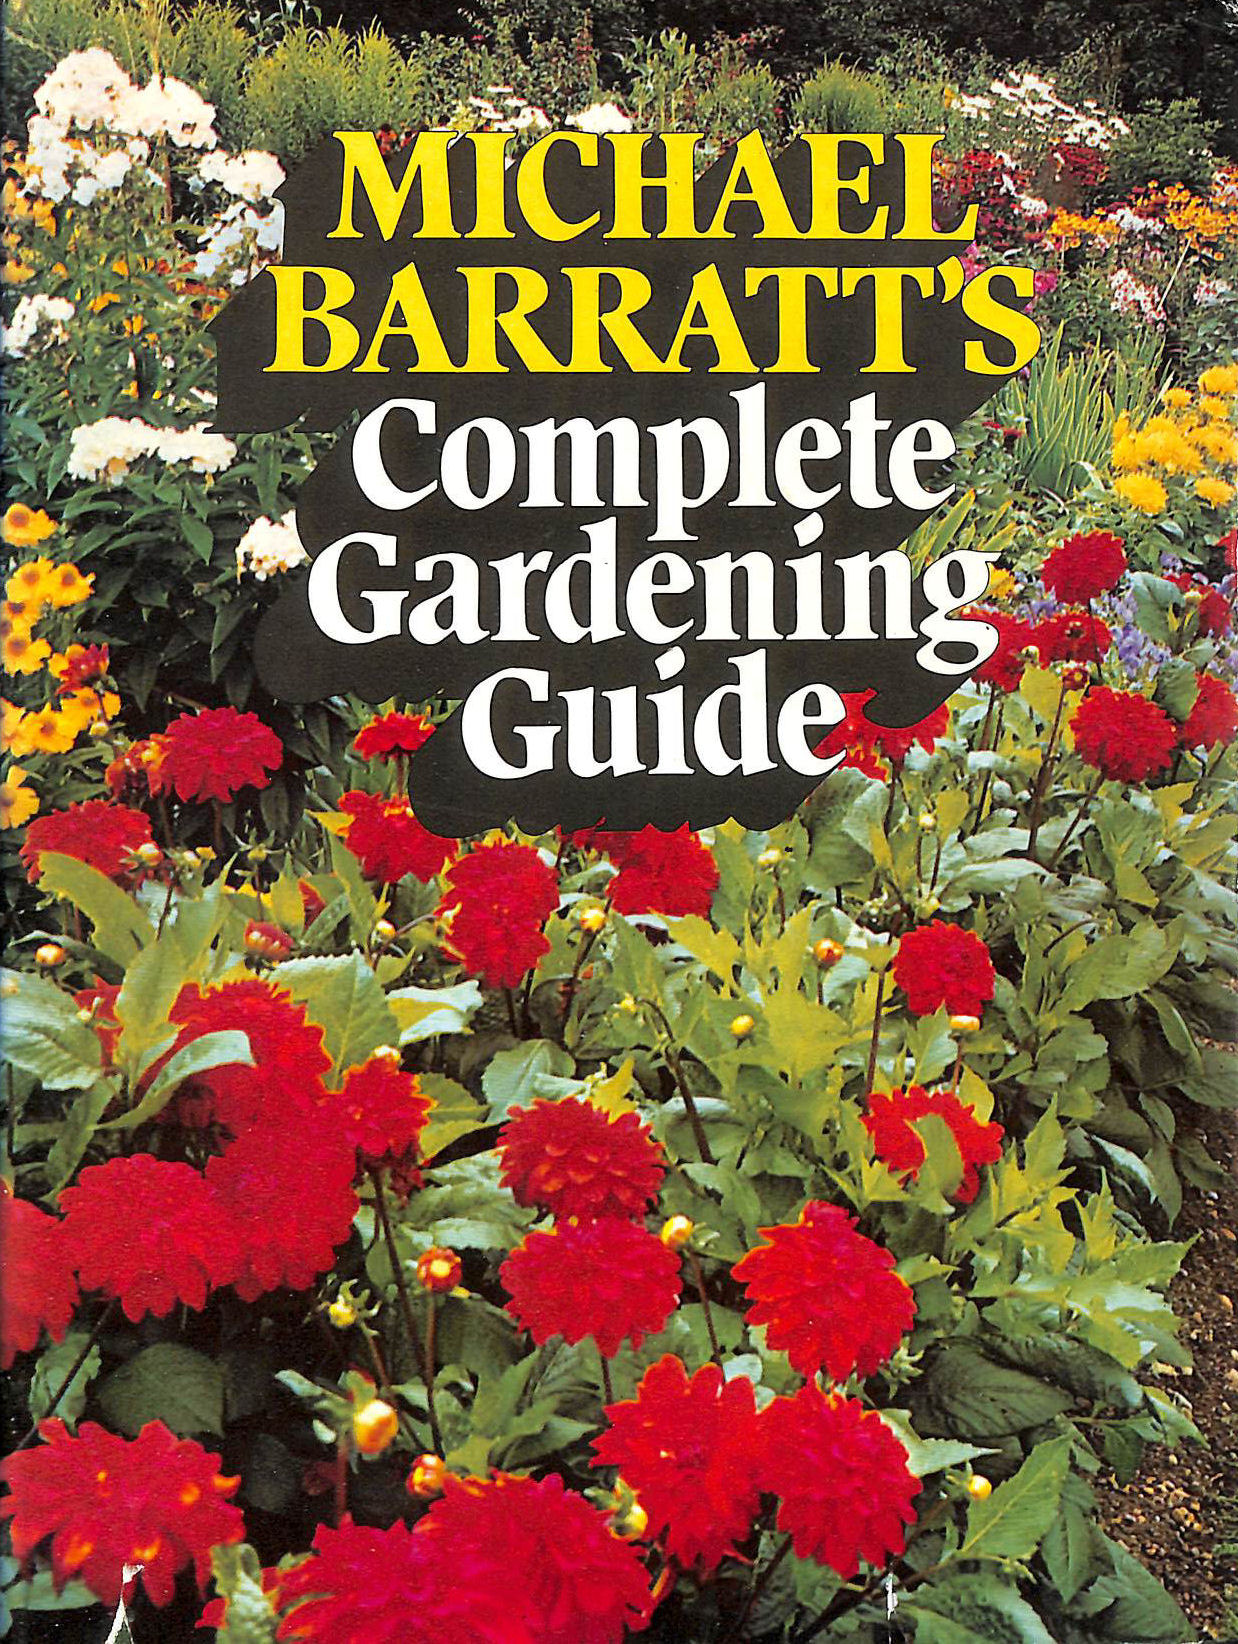 Image for Complete Gardening Guide